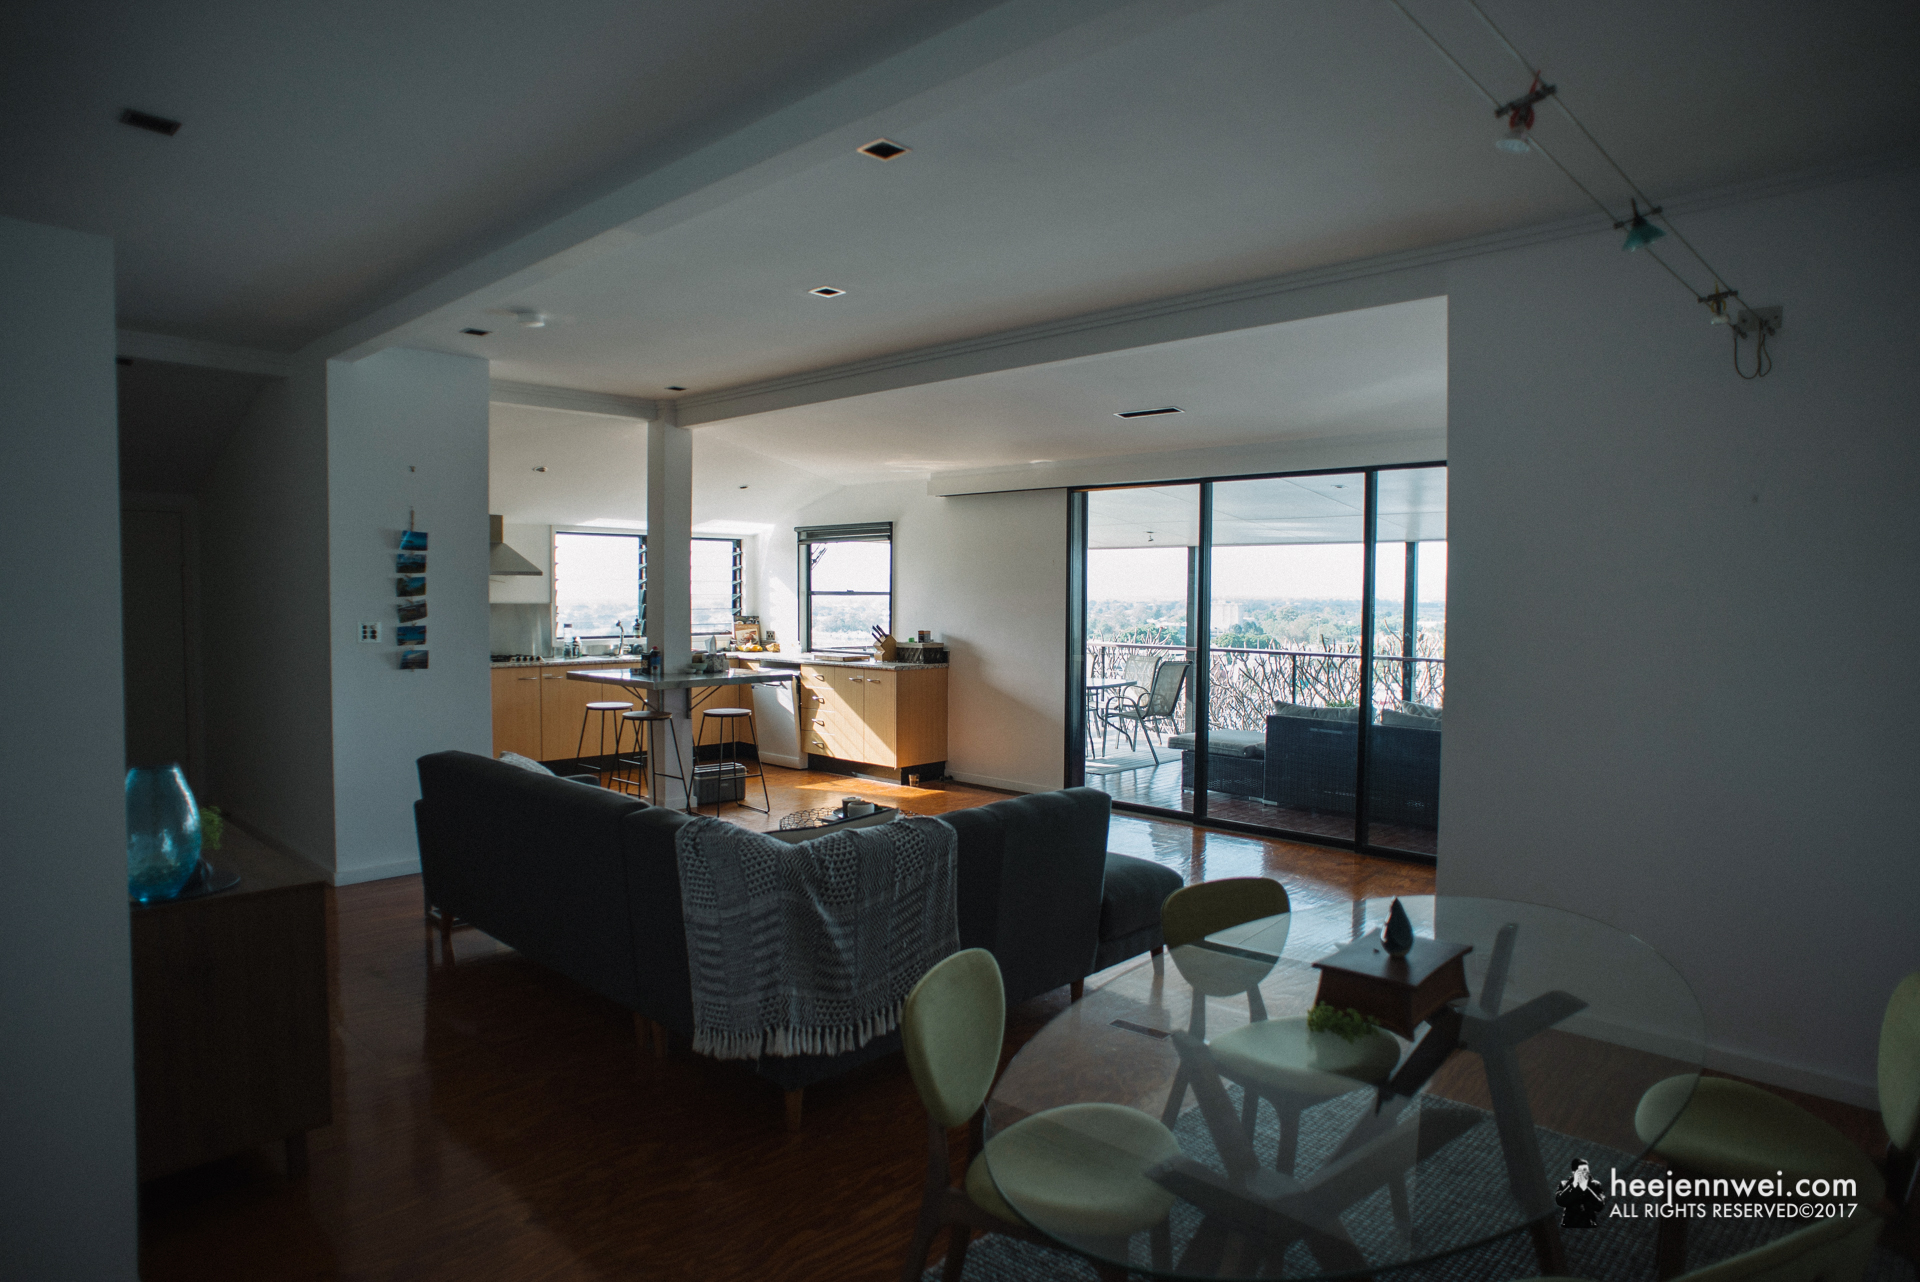 Clean and modern shared open-plan living space.